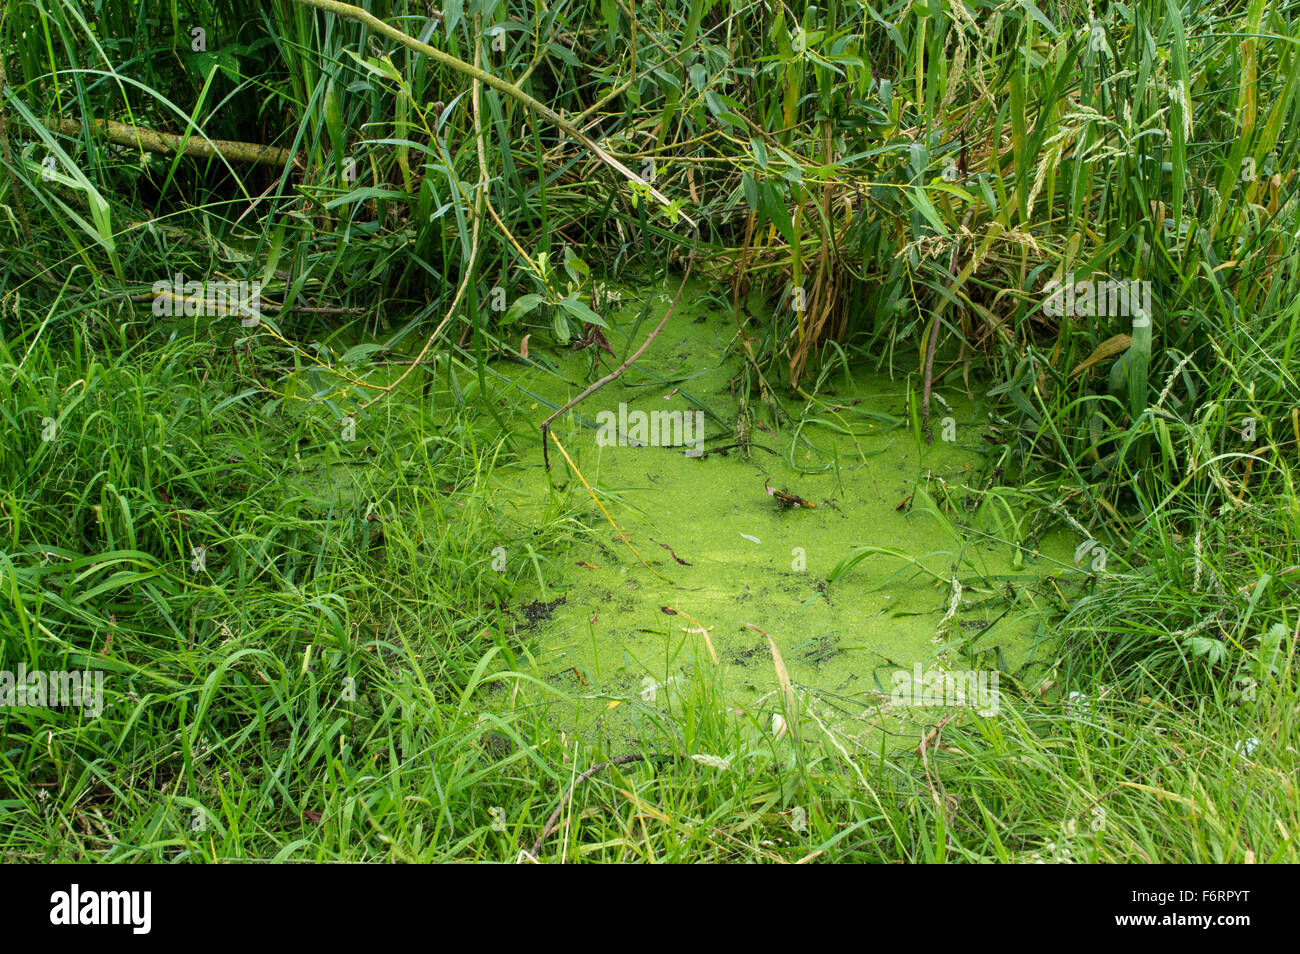 A close up of a green murky swamp surrounded by overgrown grass and weeds - Stock Image